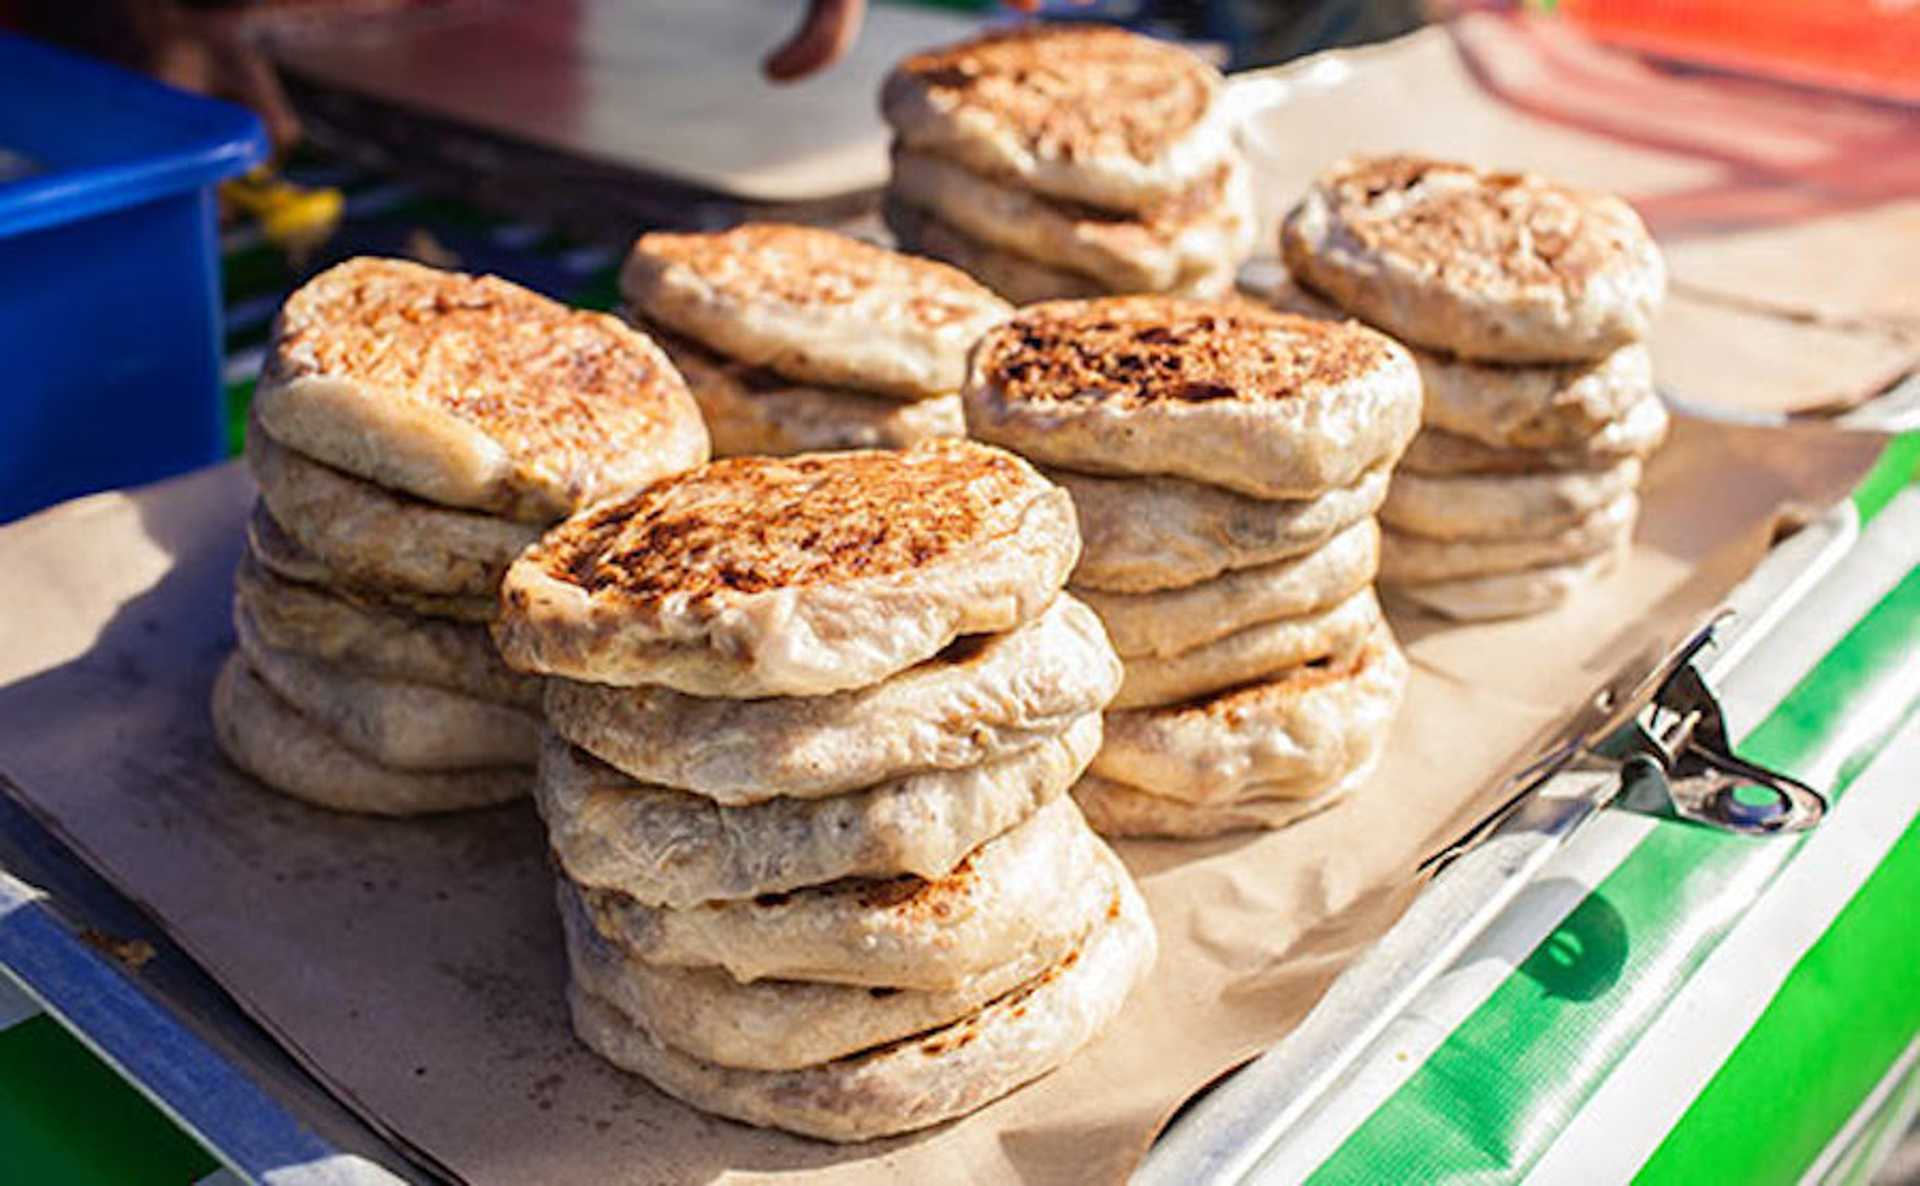 Don't be surprised at the long queues for Murtabak Langkawi - look at how fat they are!